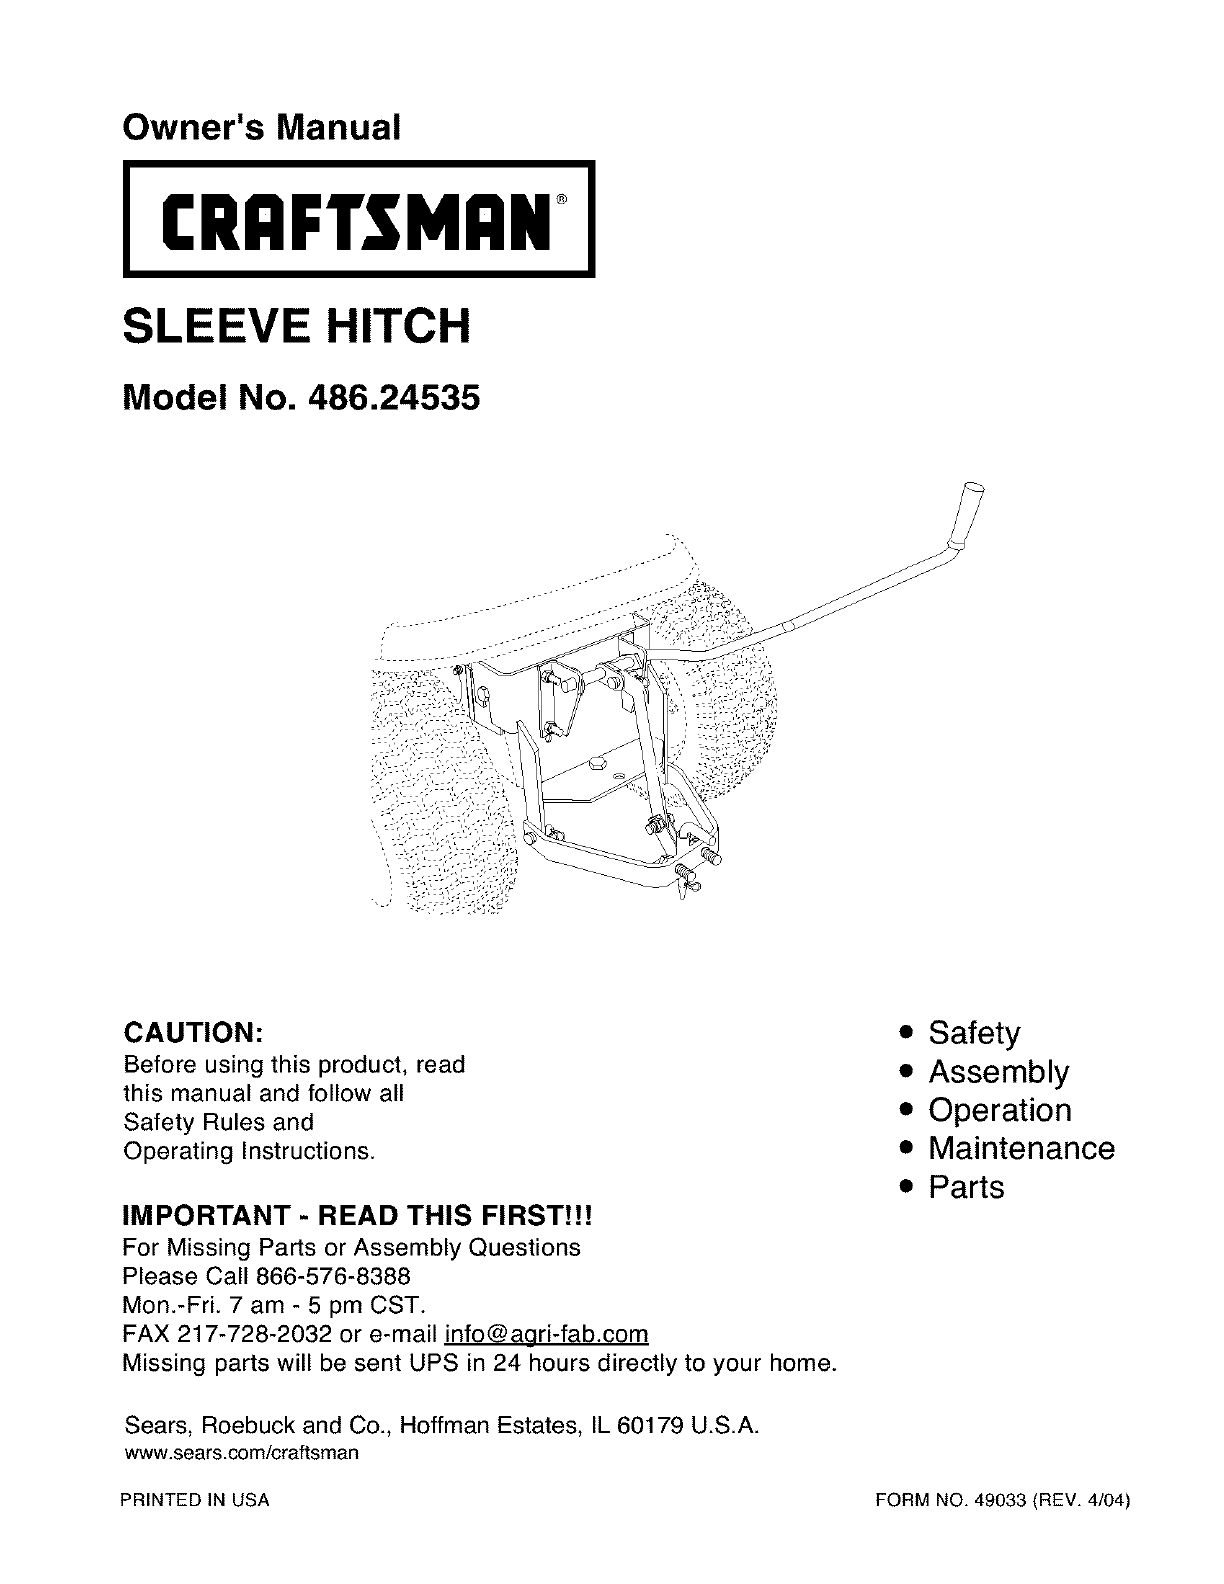 craftsman lawn mower accessory 486 24535 user guide manualsonline com rh lawnandgarden manualsonline com Craftsman Chainsaw Repair Manual Craftsman Riding Lawn Mower Engines